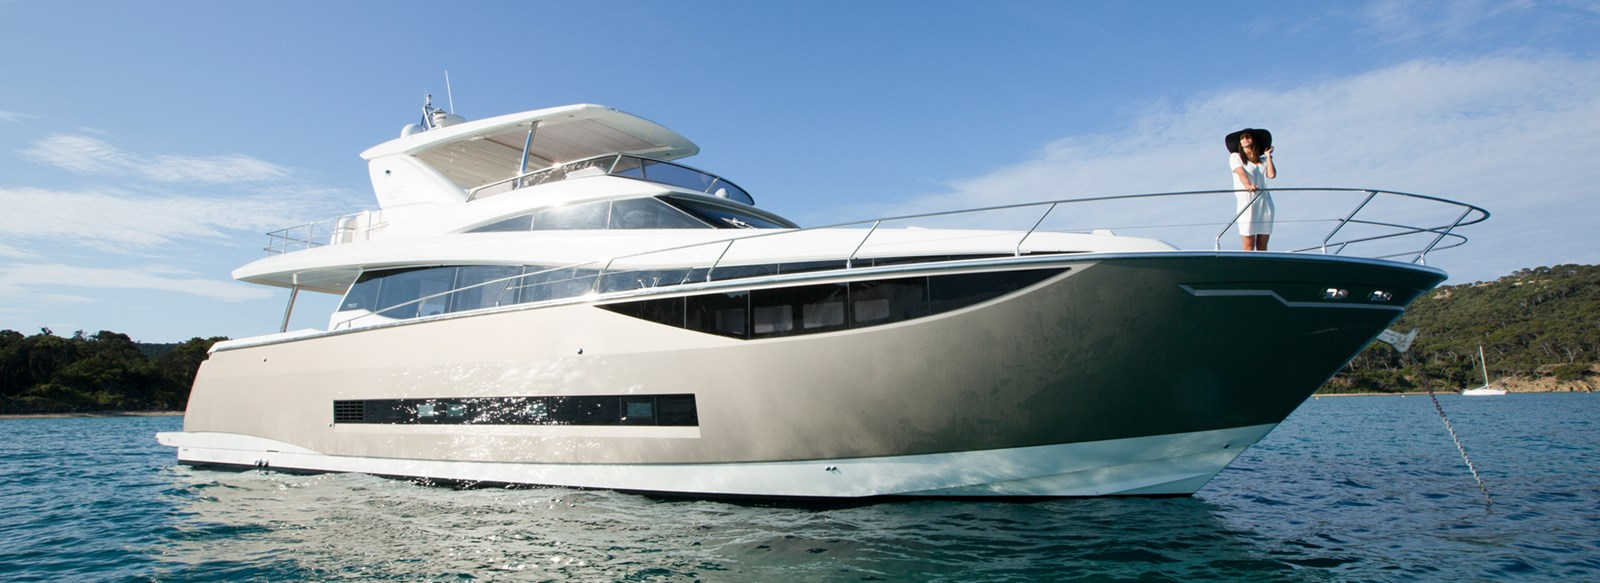 New Prestige 750 Yachts For Sale